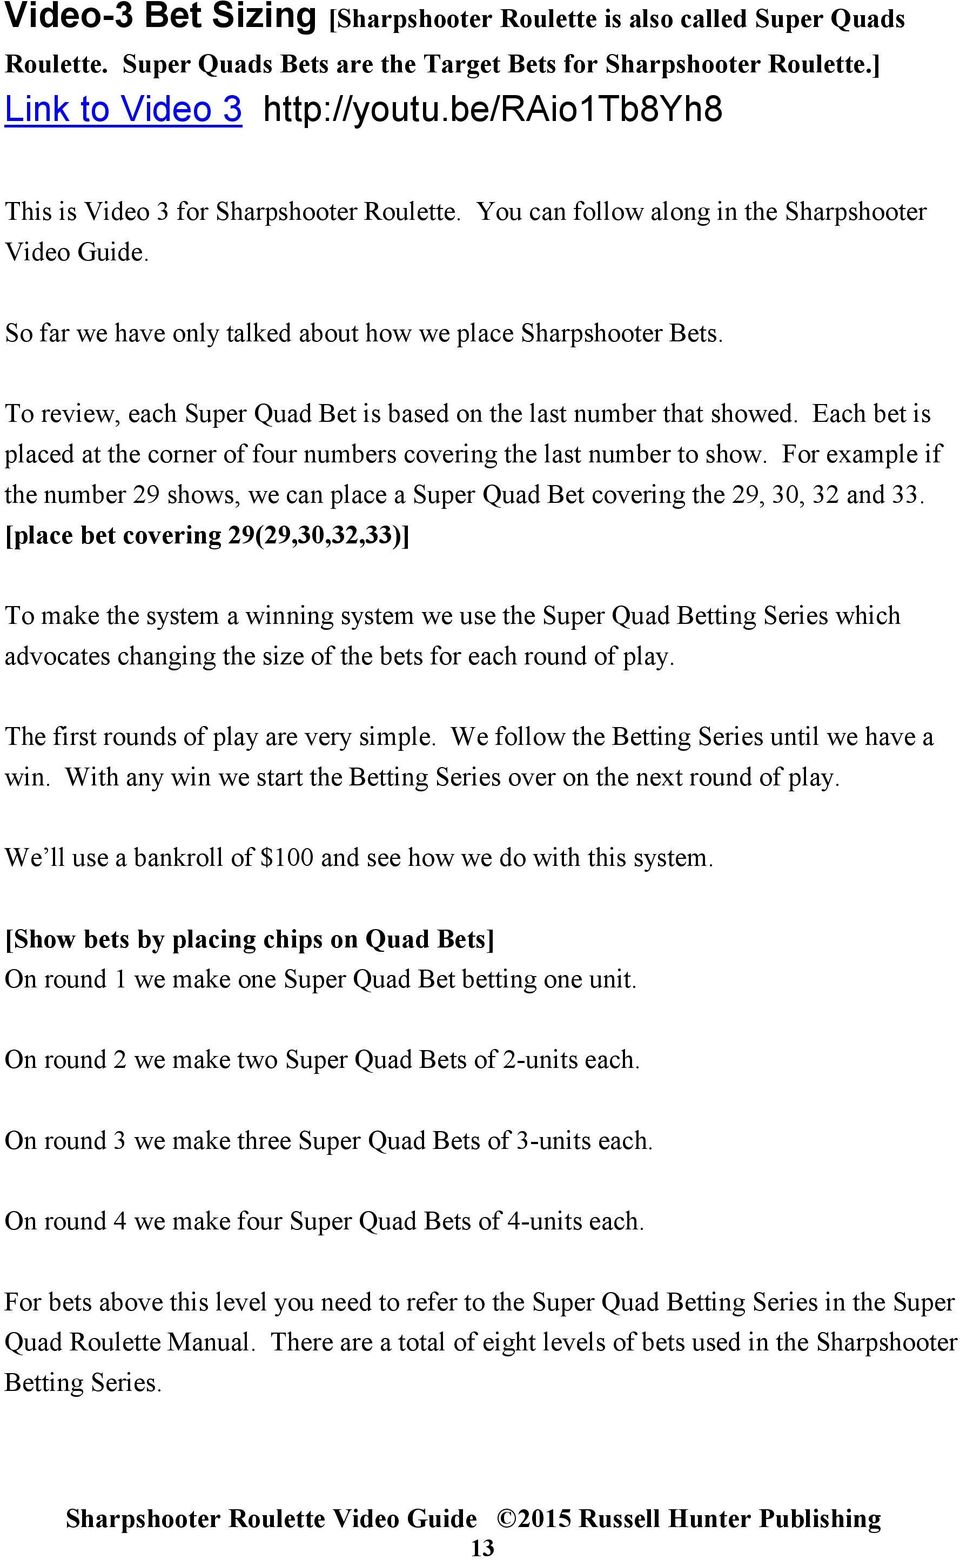 To review, each Super Quad Bet is based on the last number that showed. Each bet is placed at the corner of four numbers covering the last number to show.